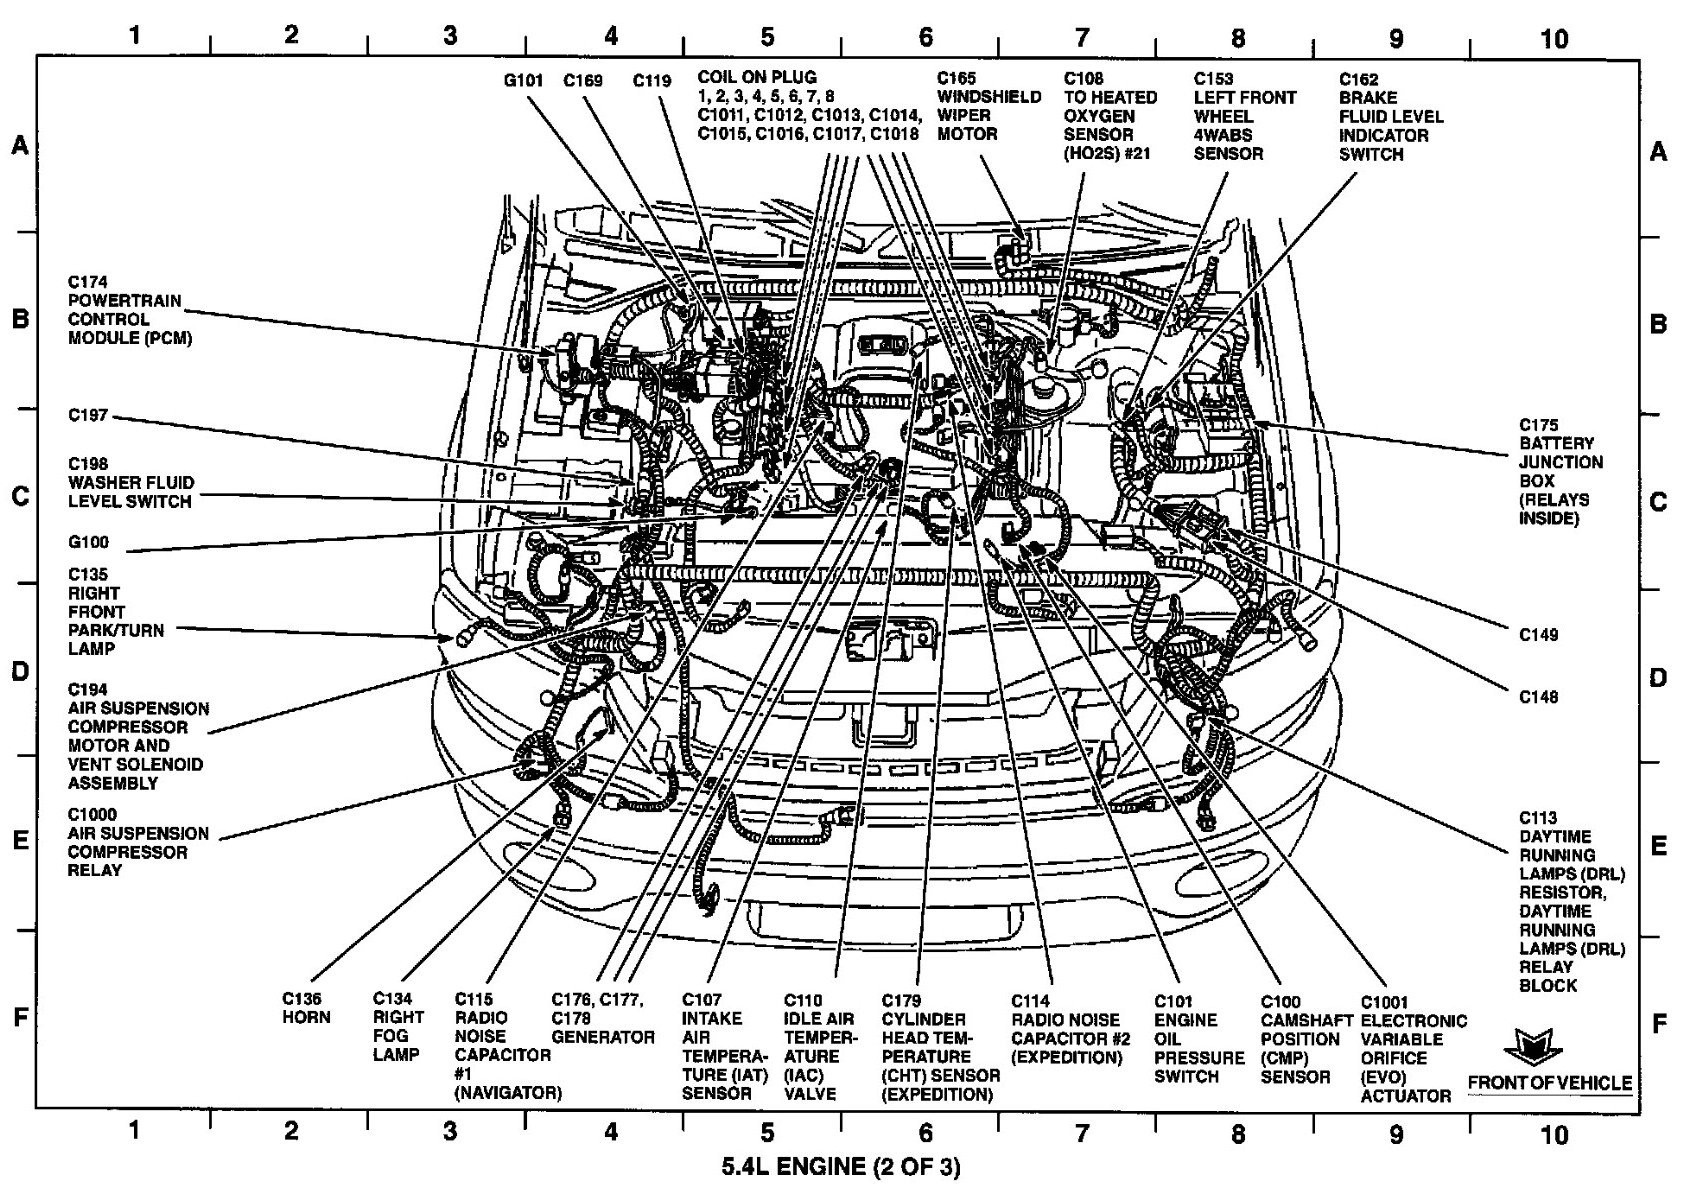 bmw 528i engine diagram - wiring diagram log end-super -  end-super.superpolobio.it  superpolobio.it